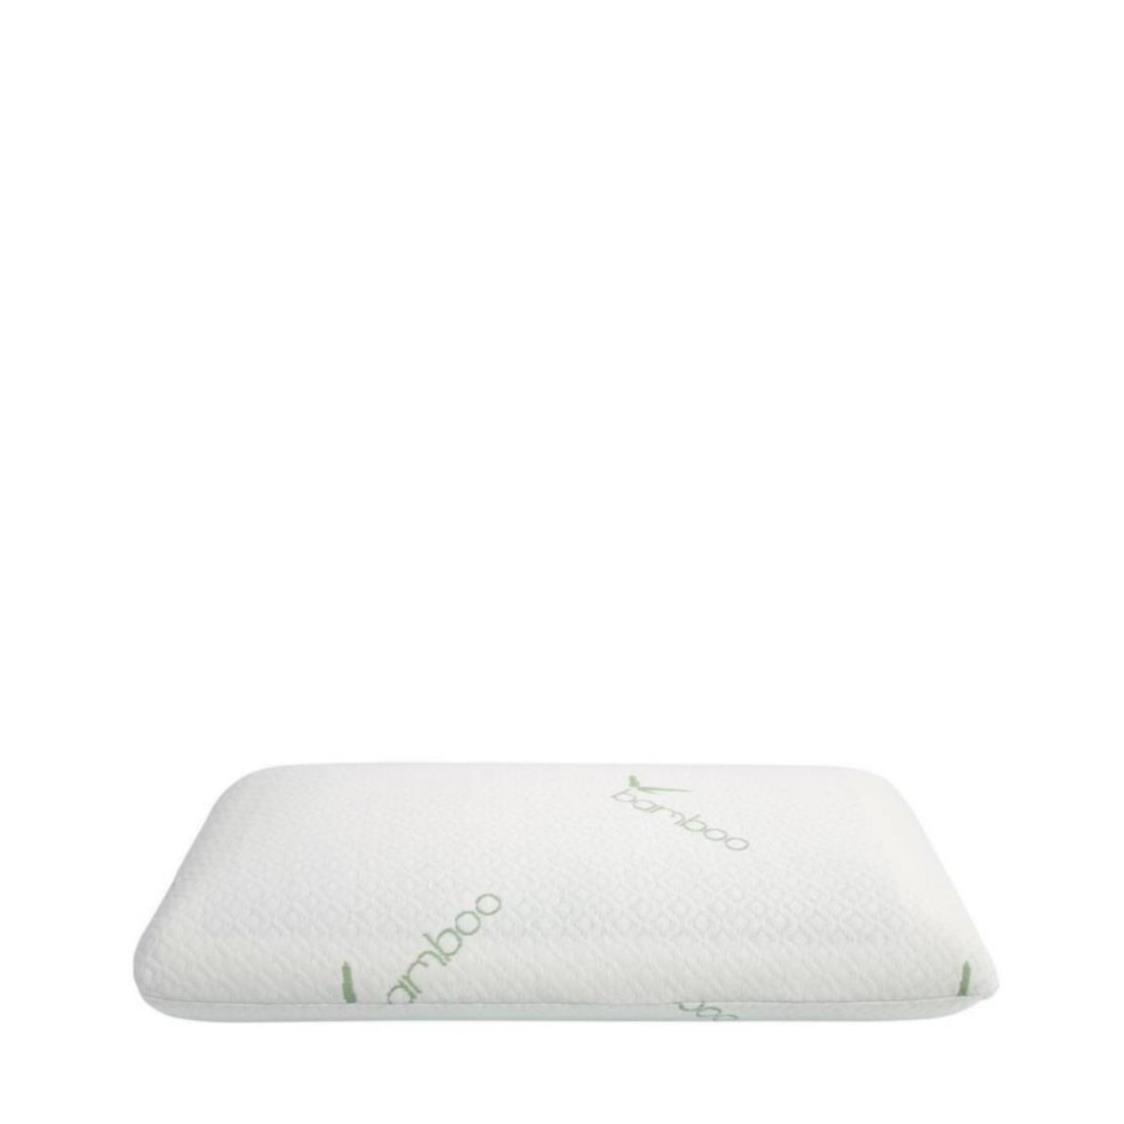 paarizaat products bamboo pillows pillow sleep memory shop accessories foam